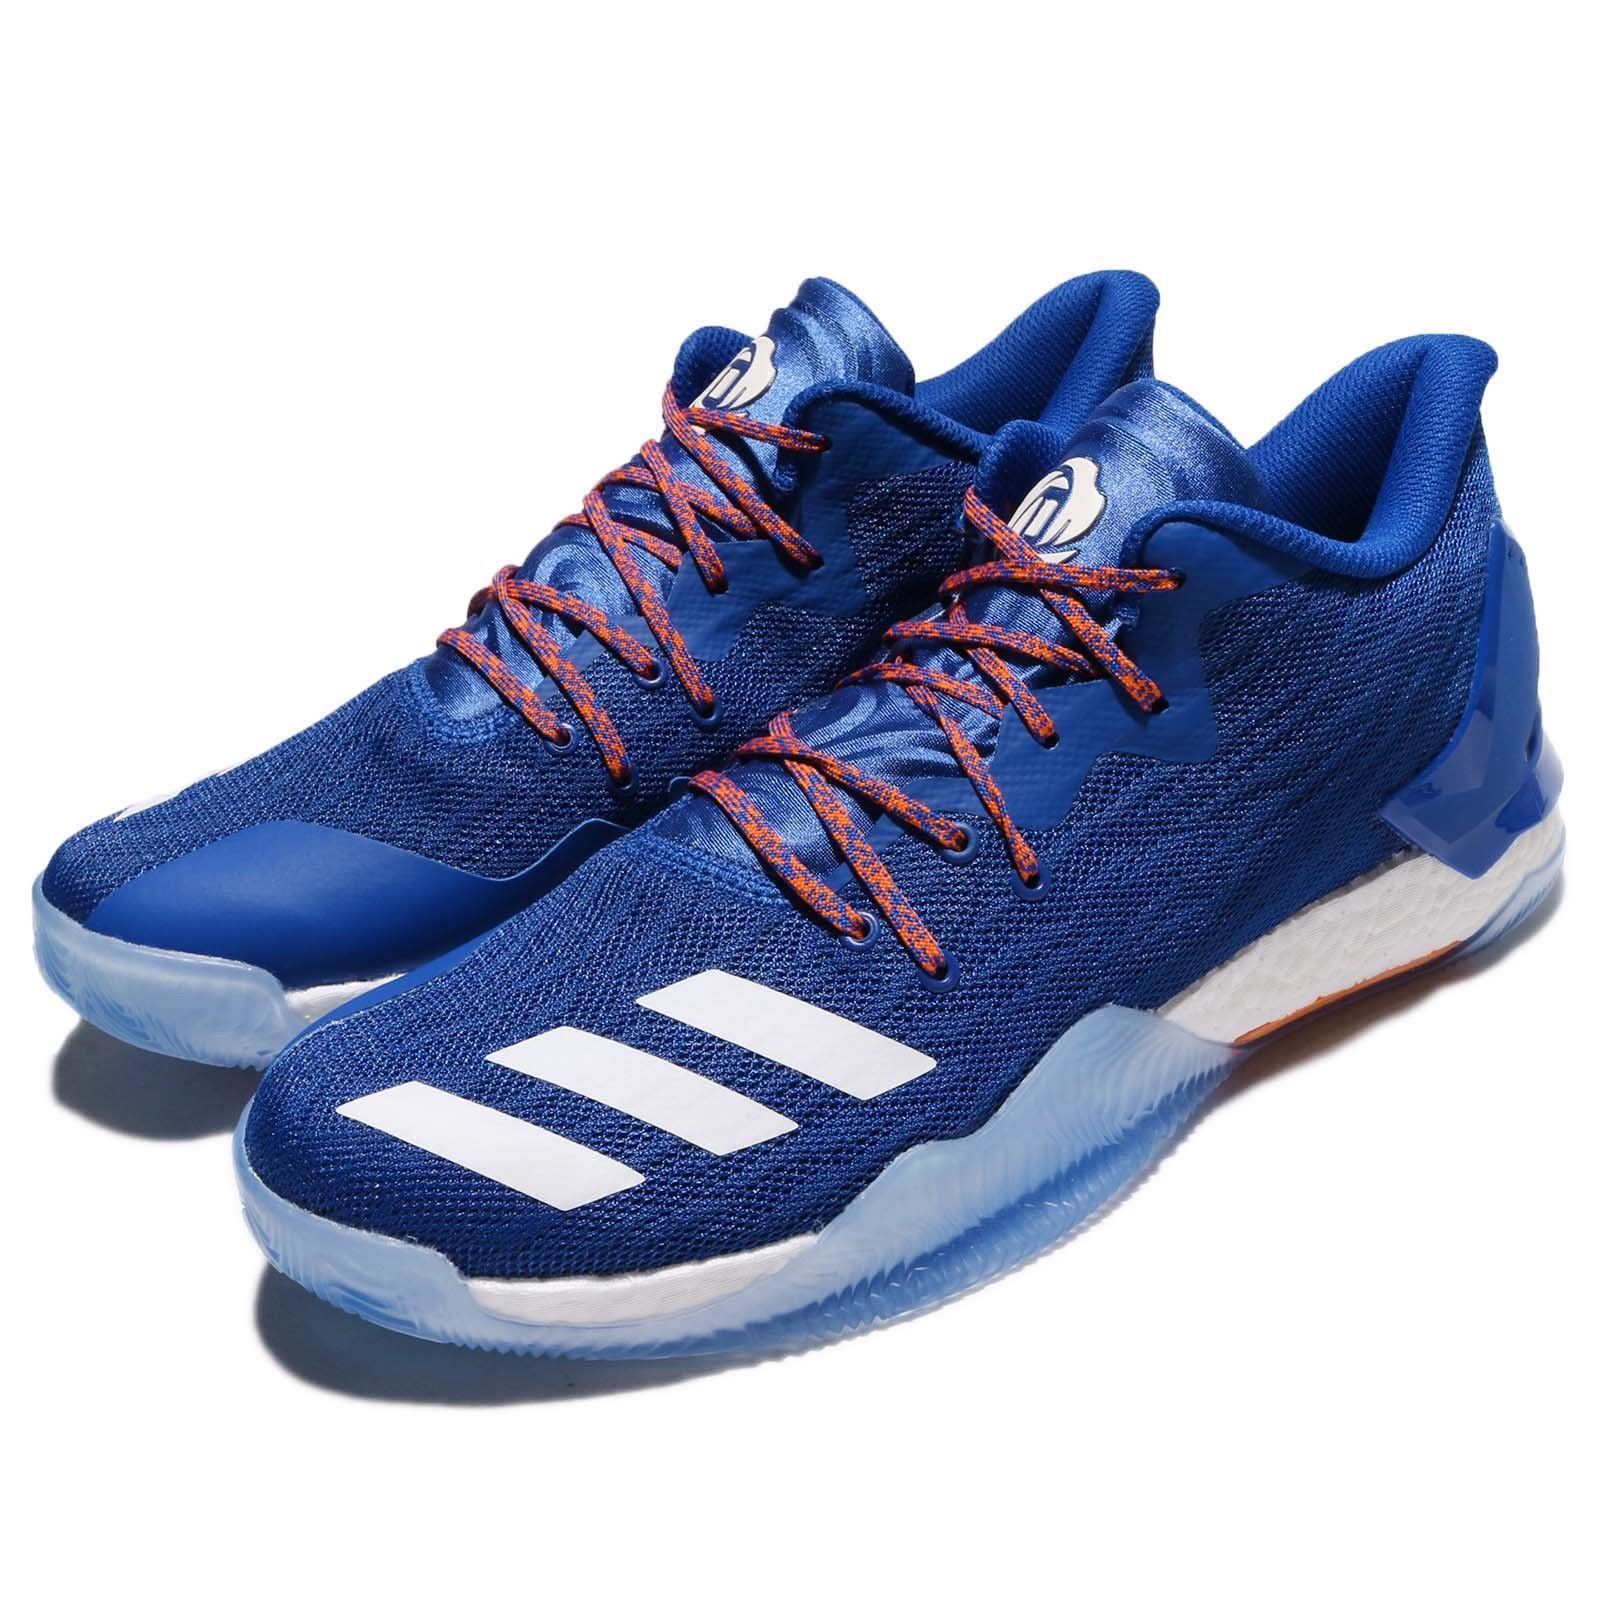 95027e478431 ... coupon for adidas d rose 7 low derrick rose knicks blue orange men  basketball shoes by4499